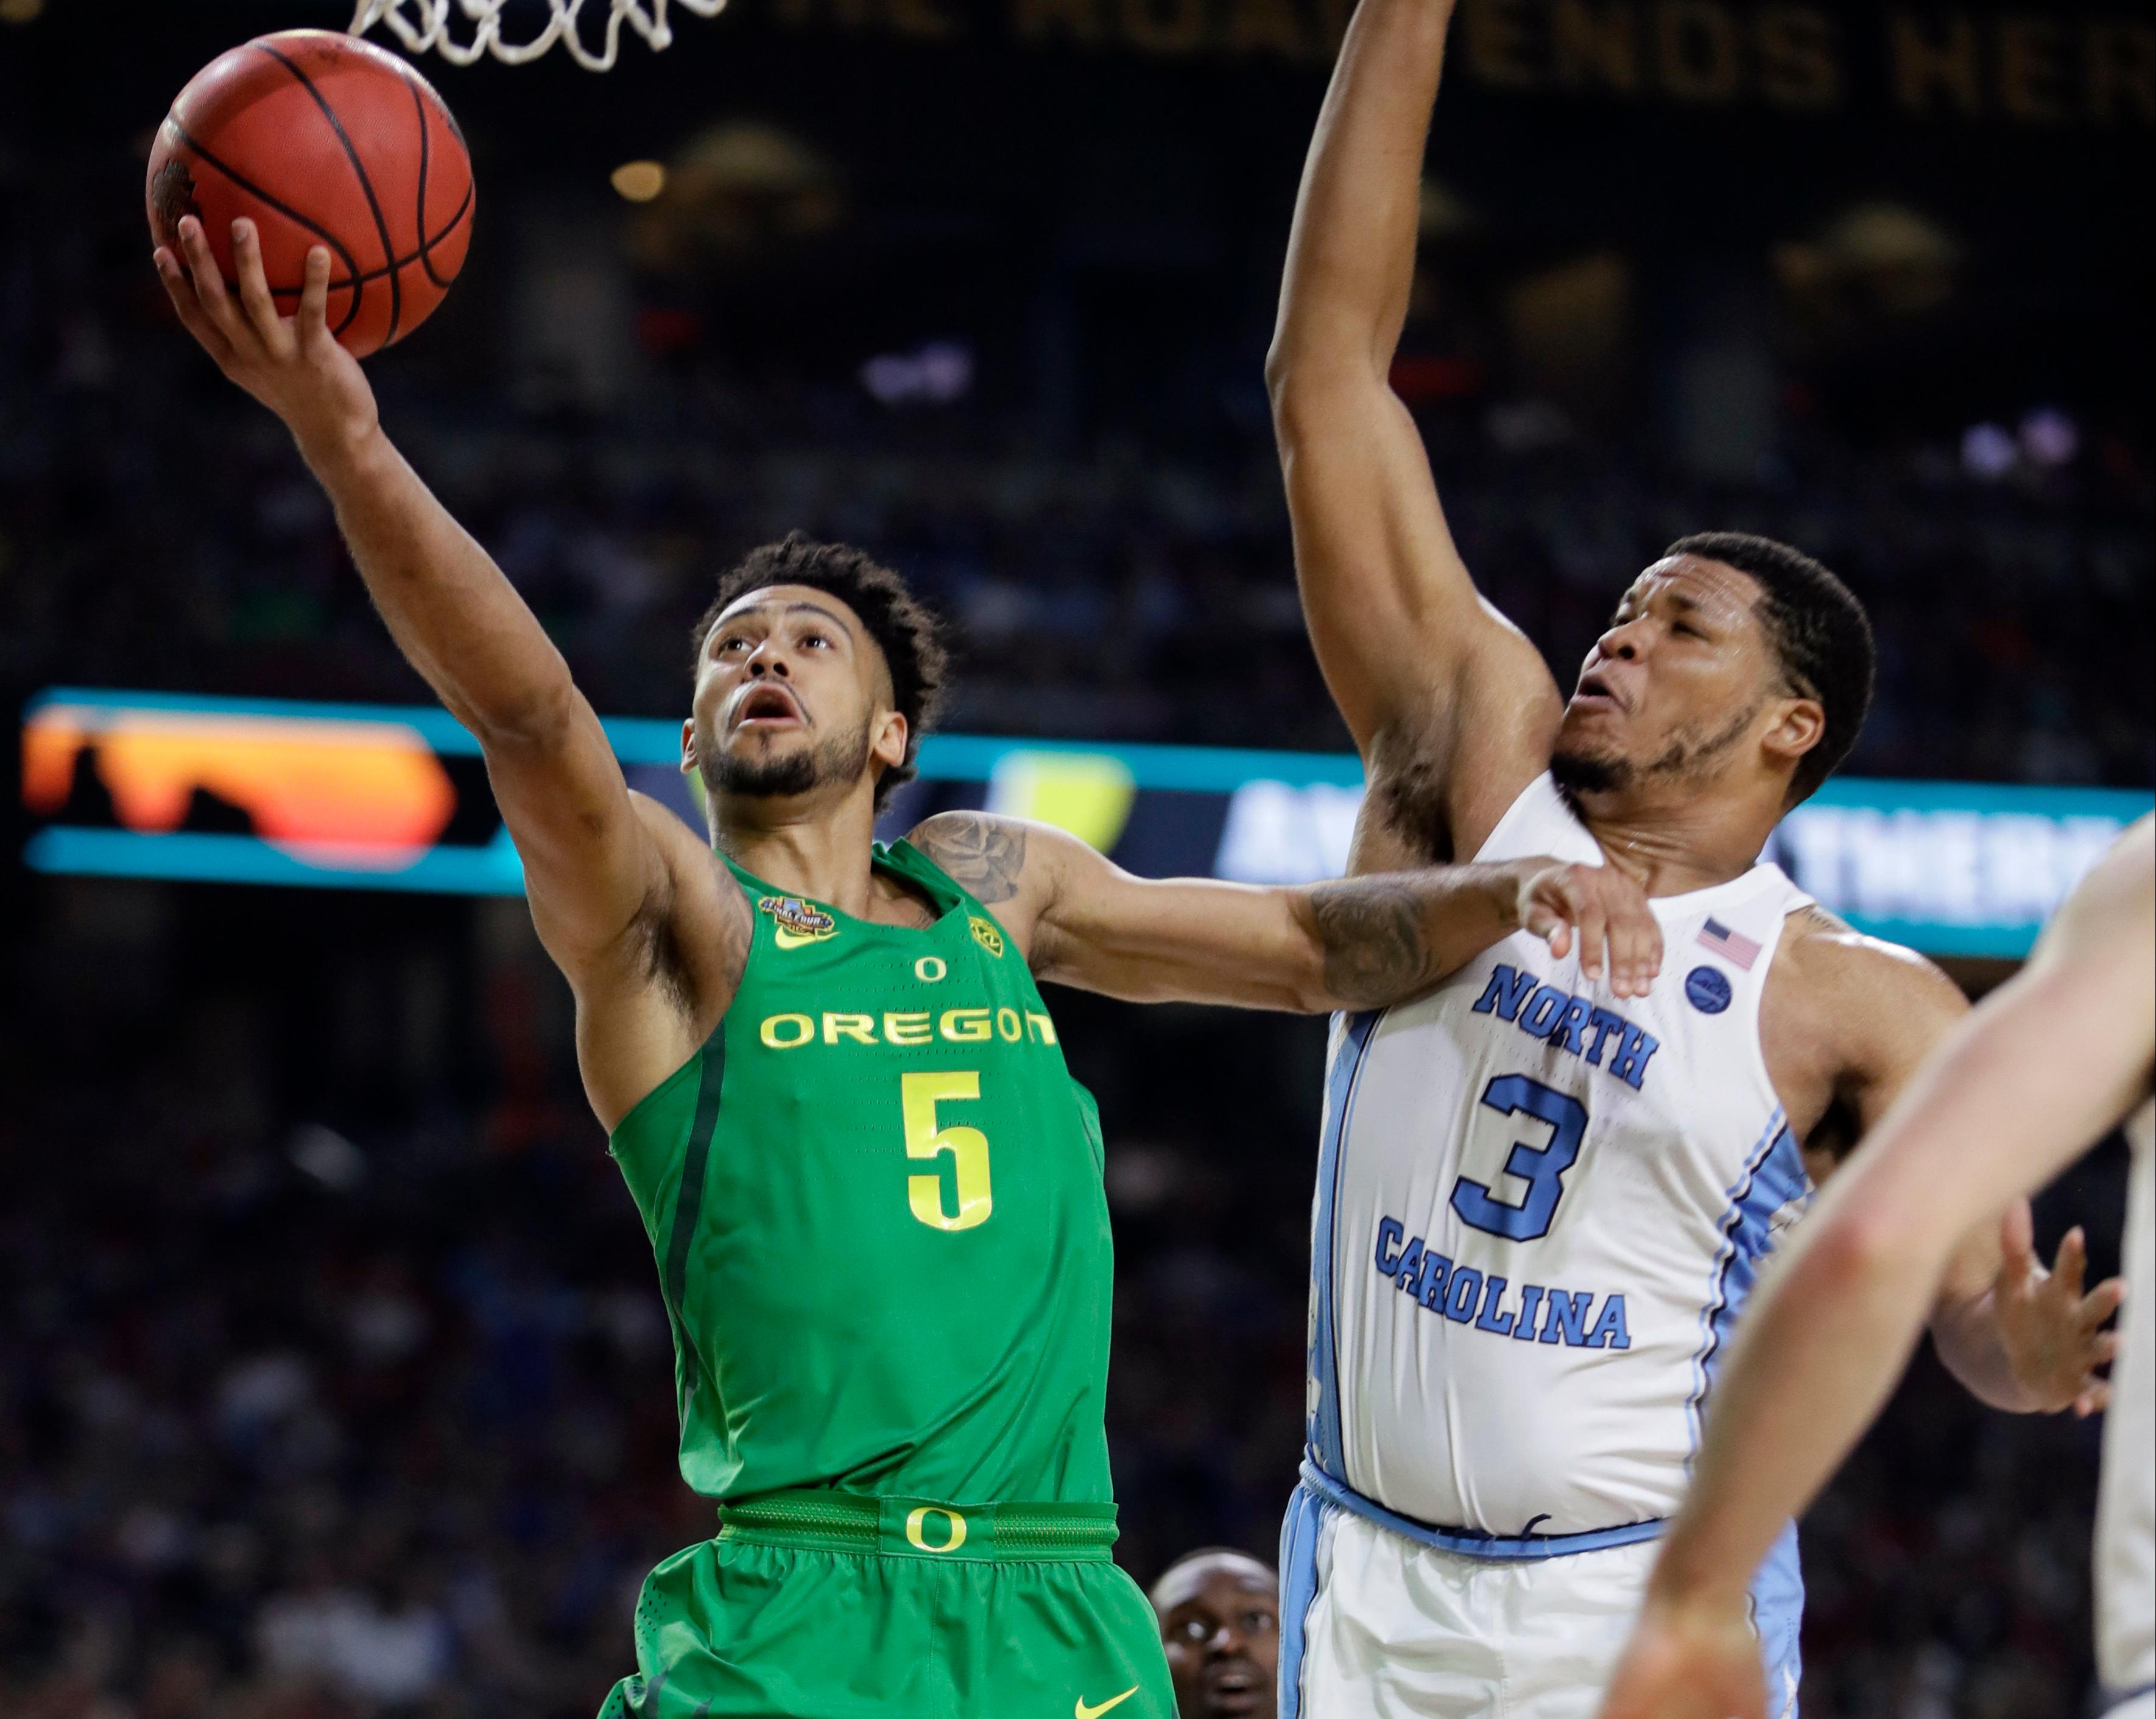 Oregon guard Tyler Dorsey (5) drives to the basket past North Carolina forward Kennedy Meeks (3) during the second half in the semifinals of the Final Four NCAA college basketball tournament, Saturday, April 1, 2017, in Glendale, Ariz. (AP Photo/Mark Humphrey)